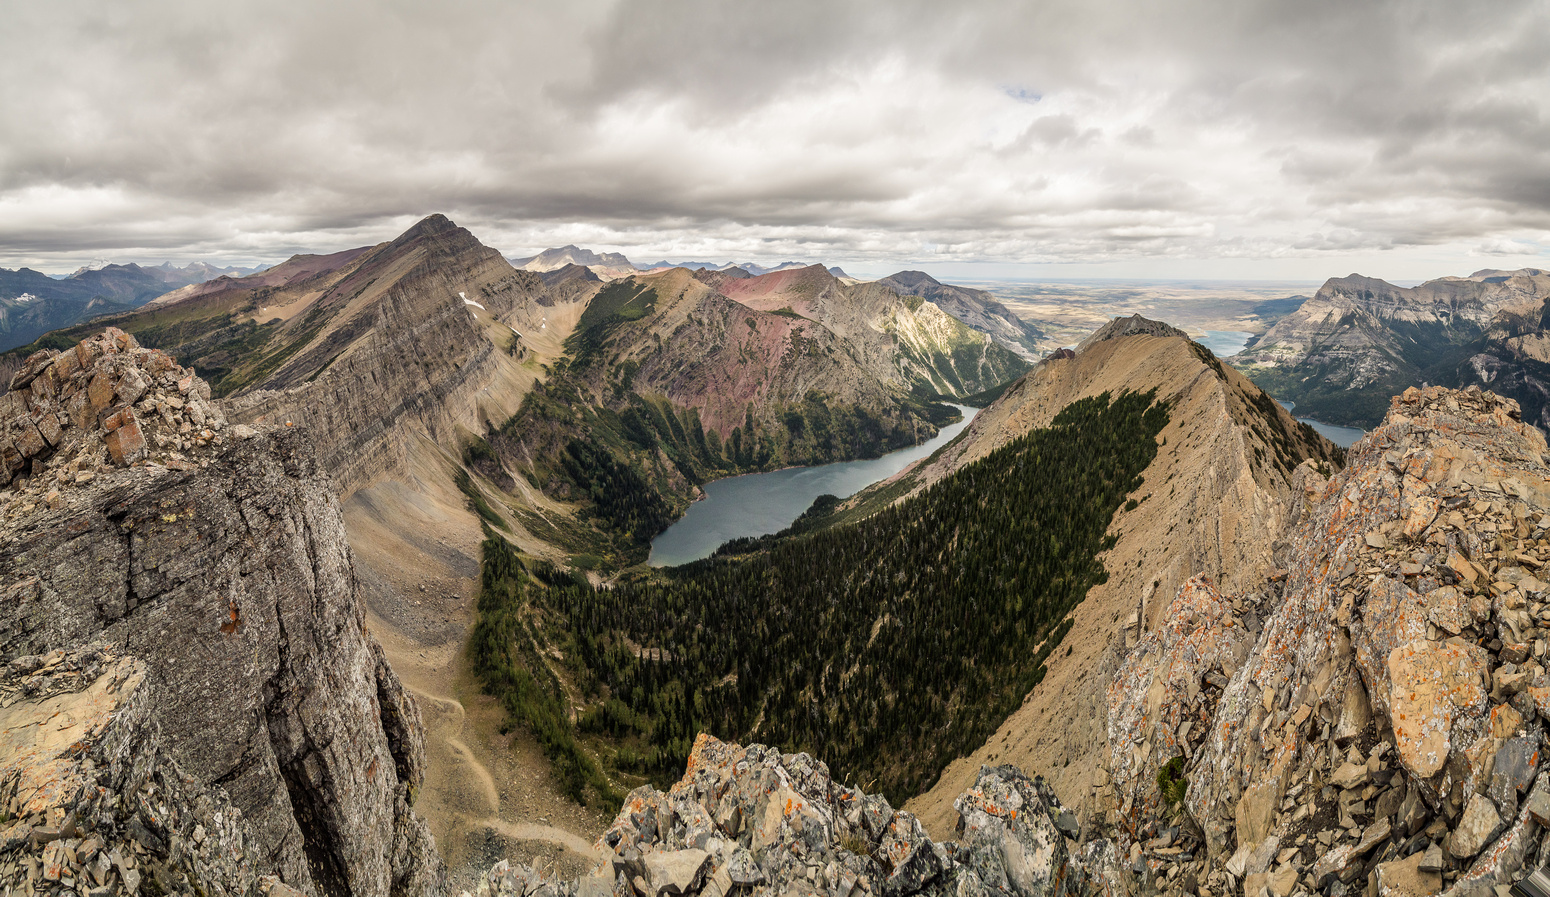 Looking down at Bertha Lake from the summit. Alderson at left and the north ridge stretching out in front of me here. Bertha Peak rises left of the lake.